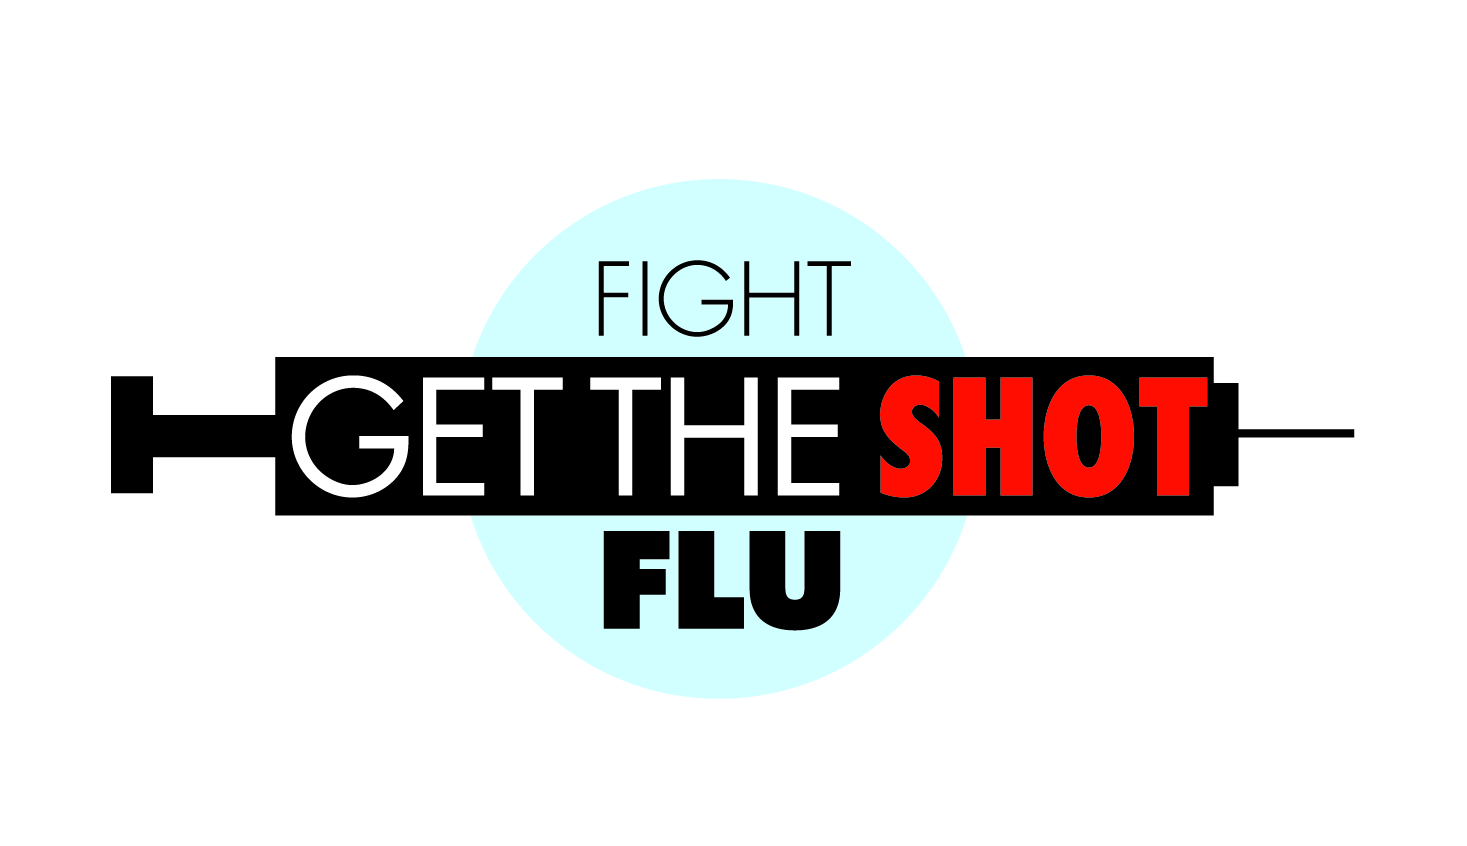 Clip Art Flu Shot Clip Art flu shot clip art clipart best vaccination bug shot